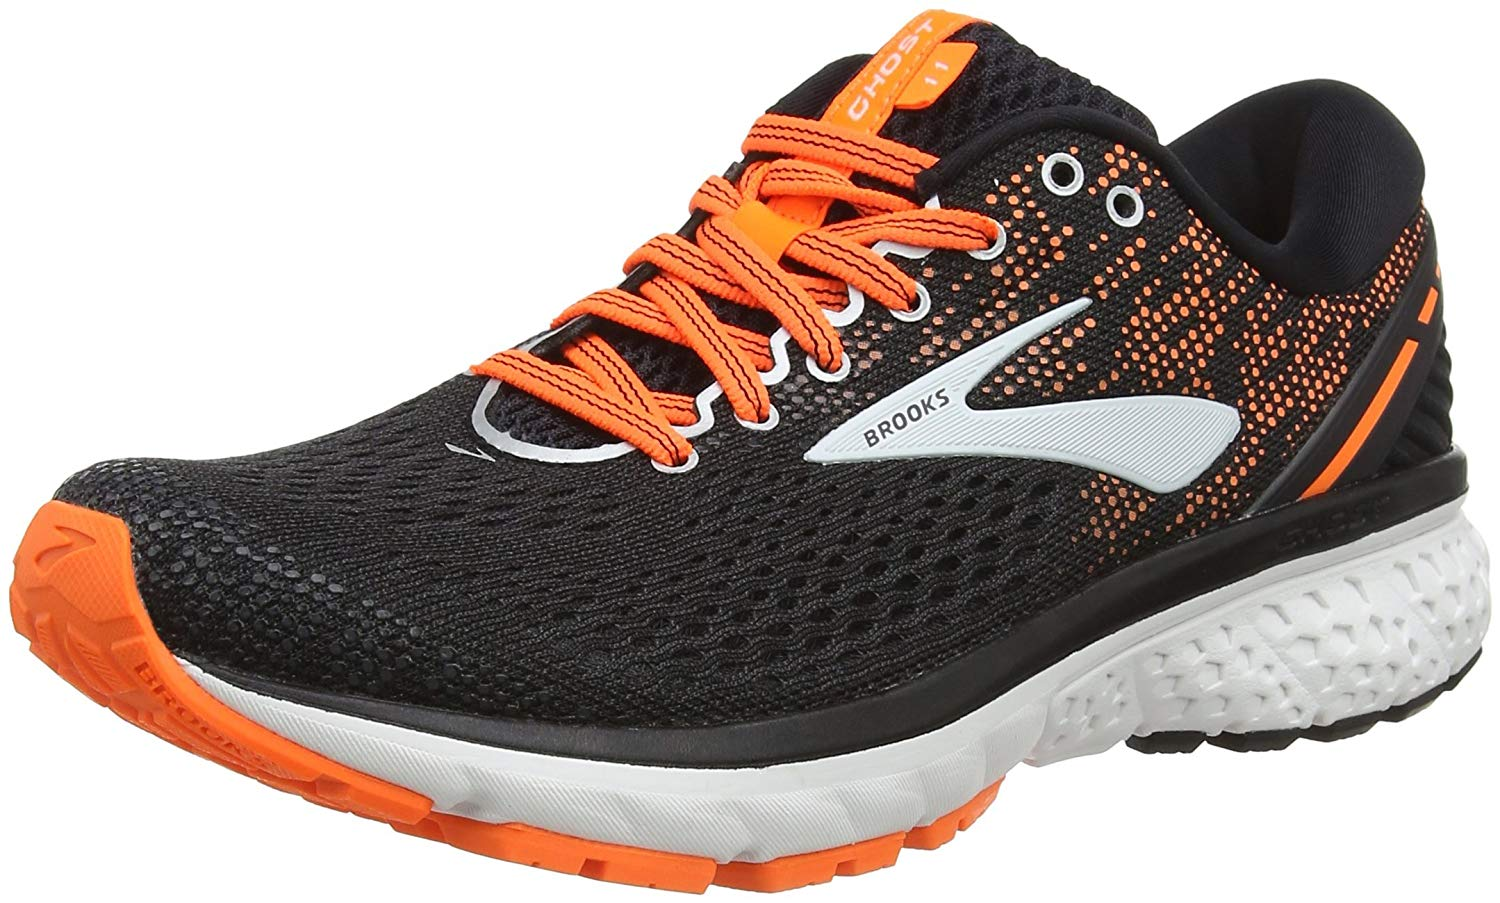 Brooks Ghost 11 Reviewed